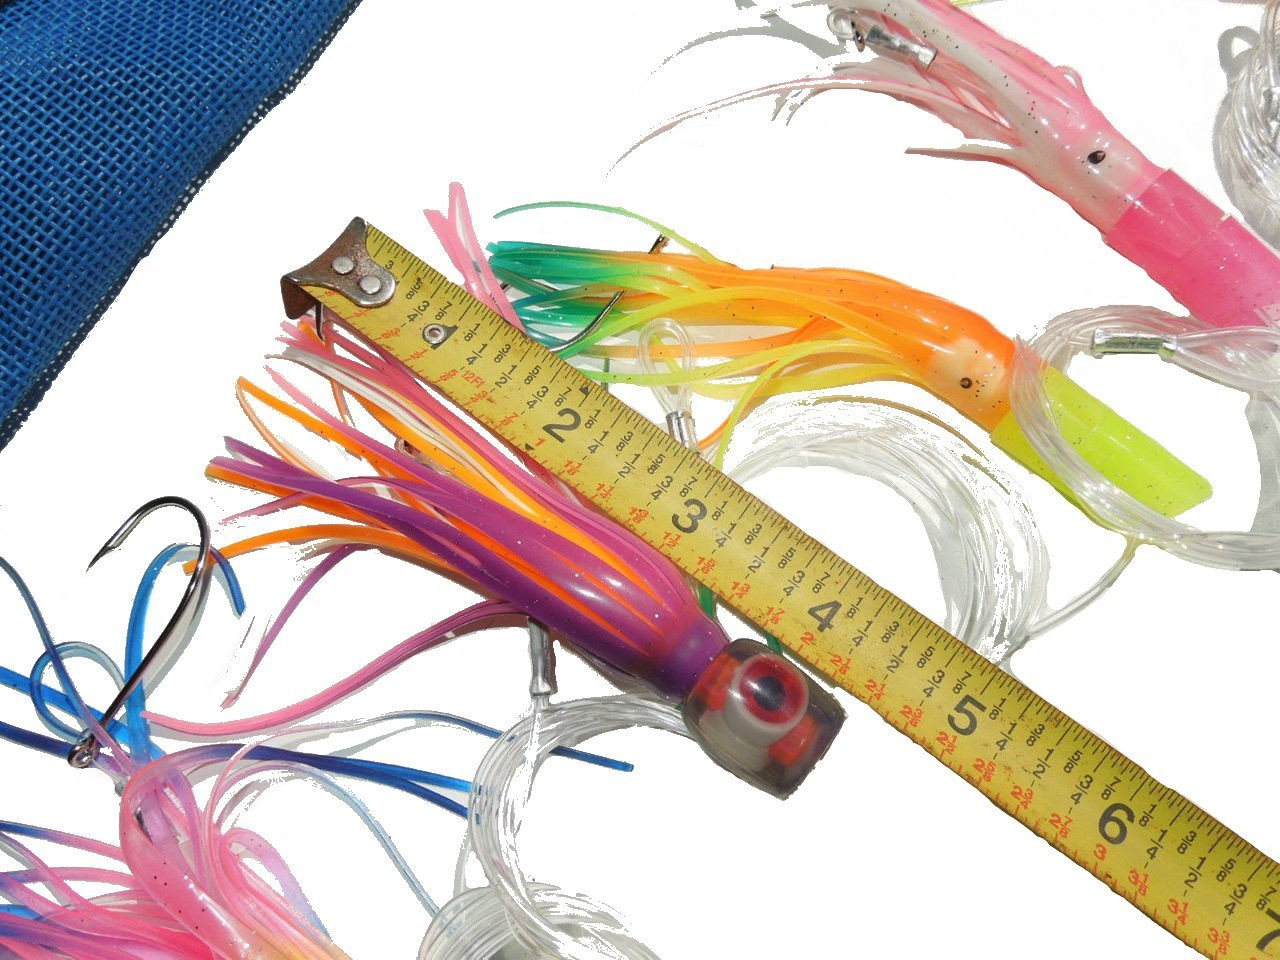 Saltwater fishing lures billfish bonanza 6 pack six for Offshore fishing tackle